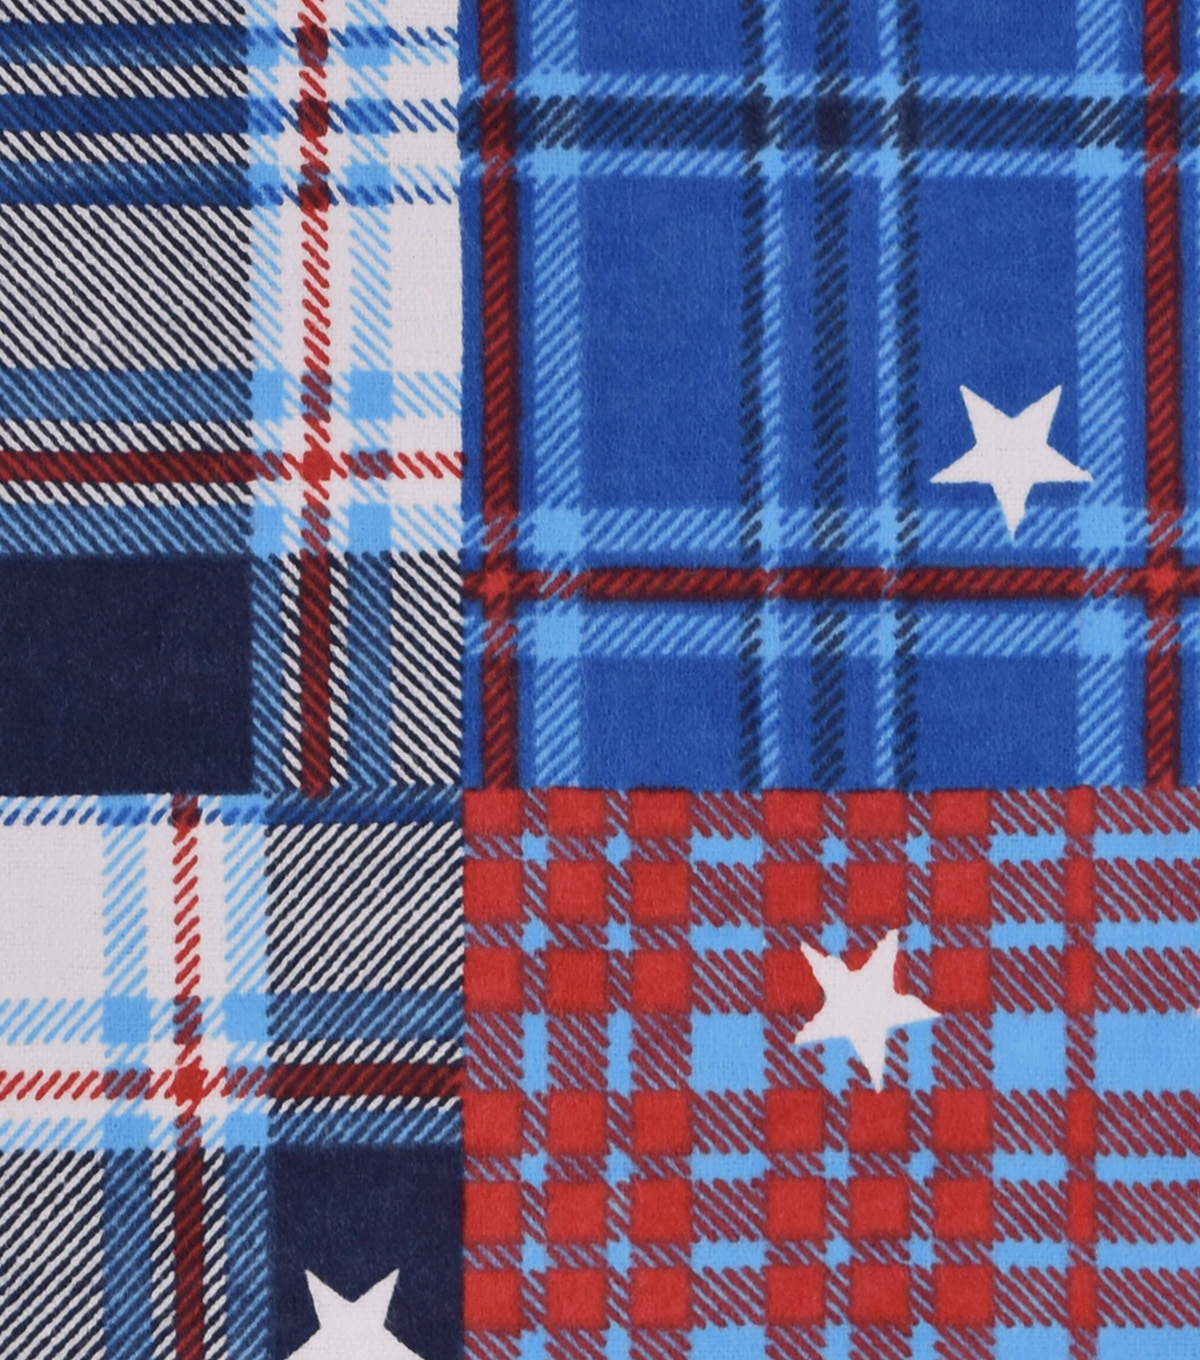 Snuggle Flannel Fabric -Patriotic Madras Plaid